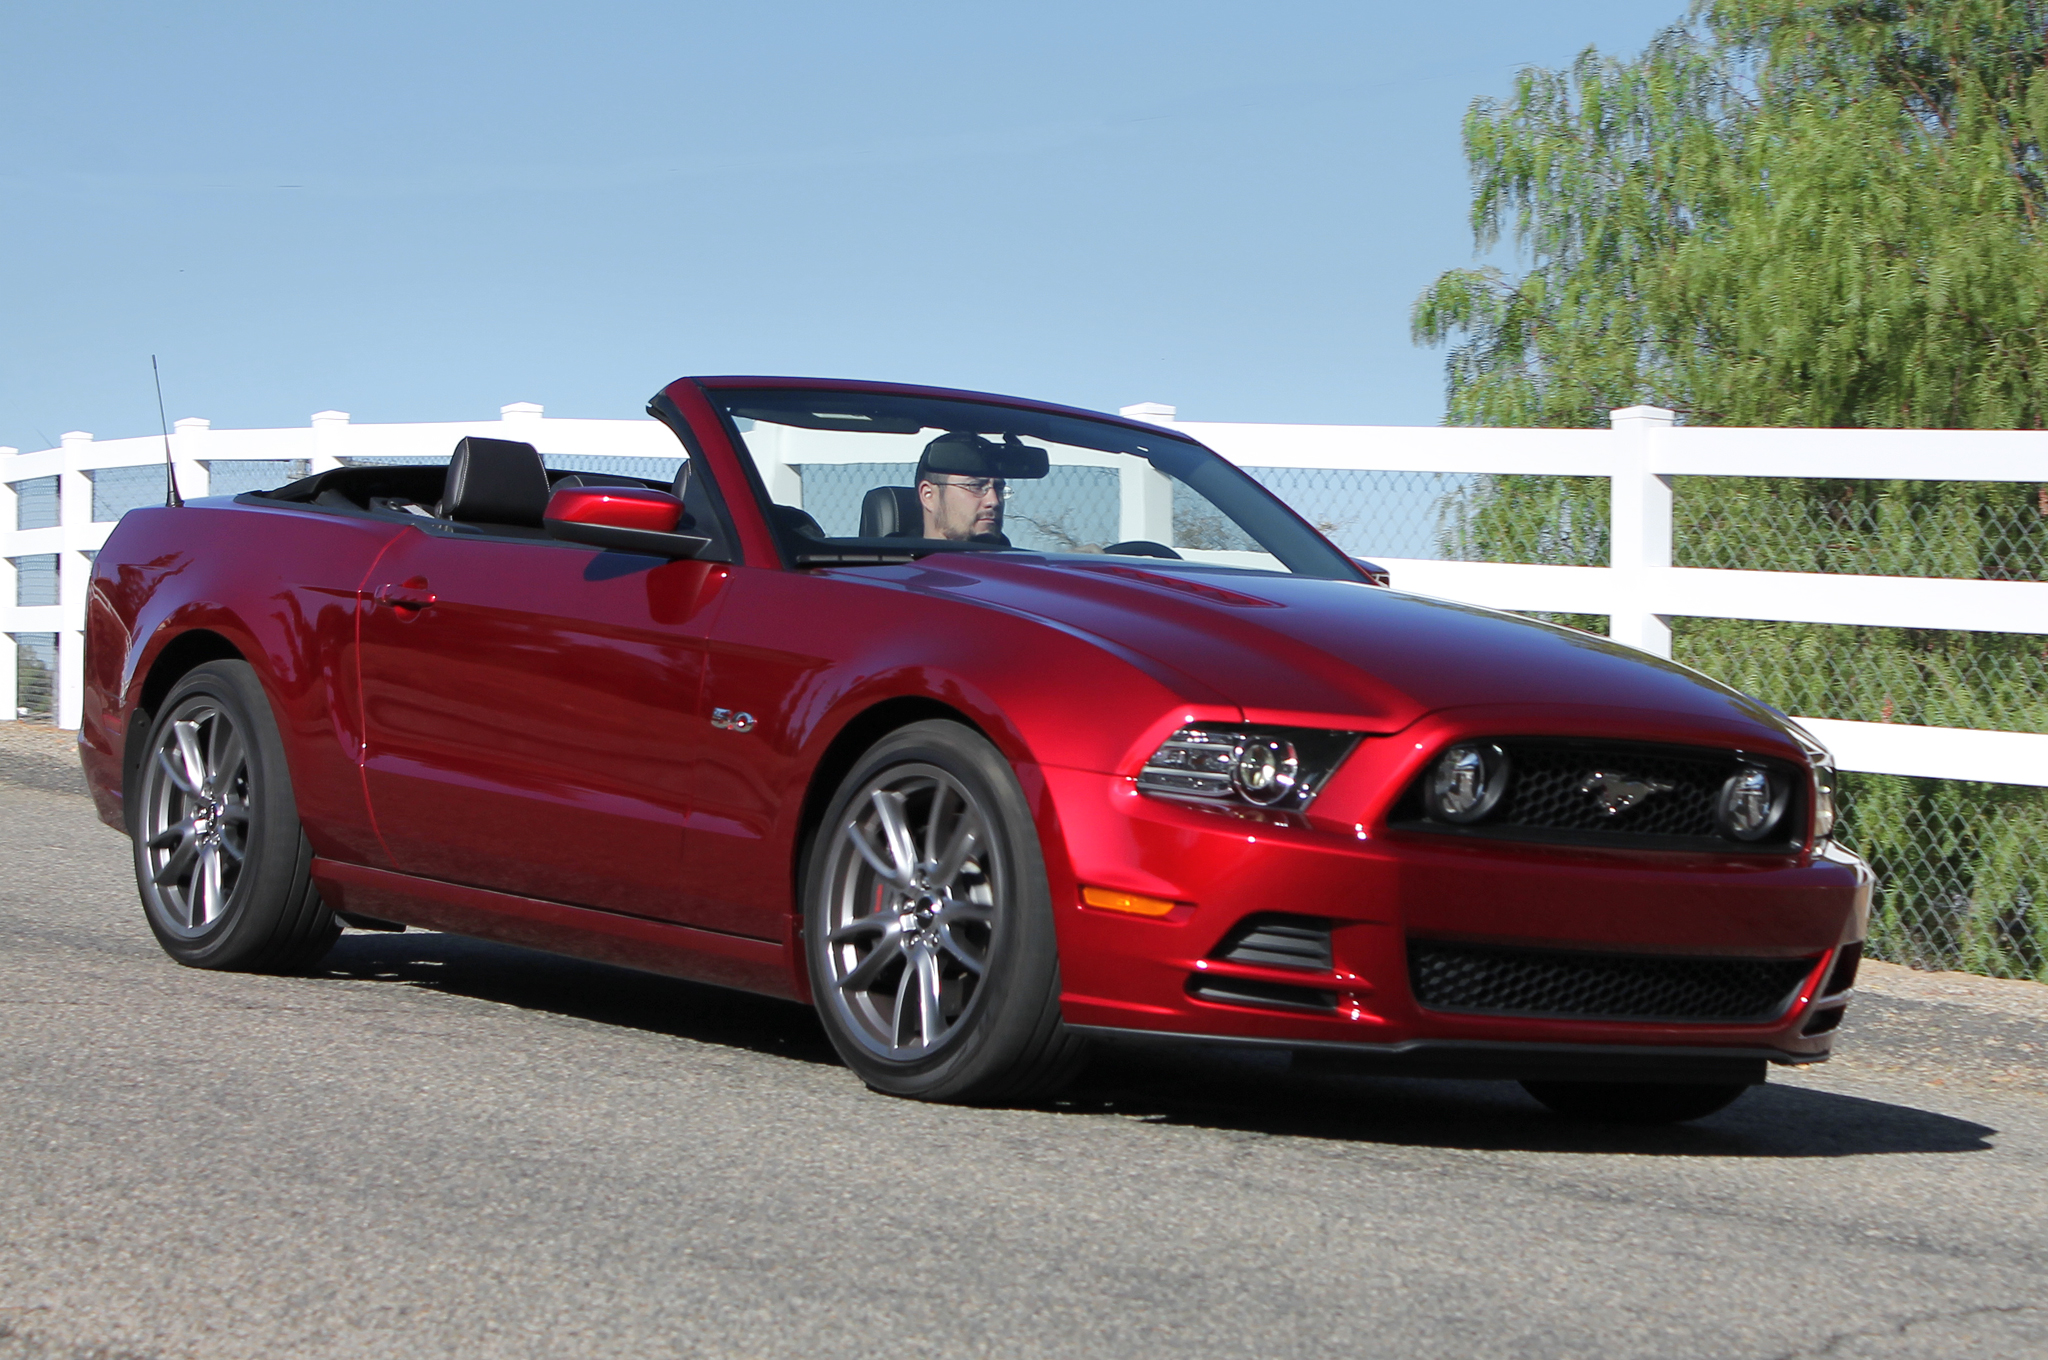 2012 Ford Mustang Convertible V Pictures Information And Specs Engine Diagram Wallpaper 12